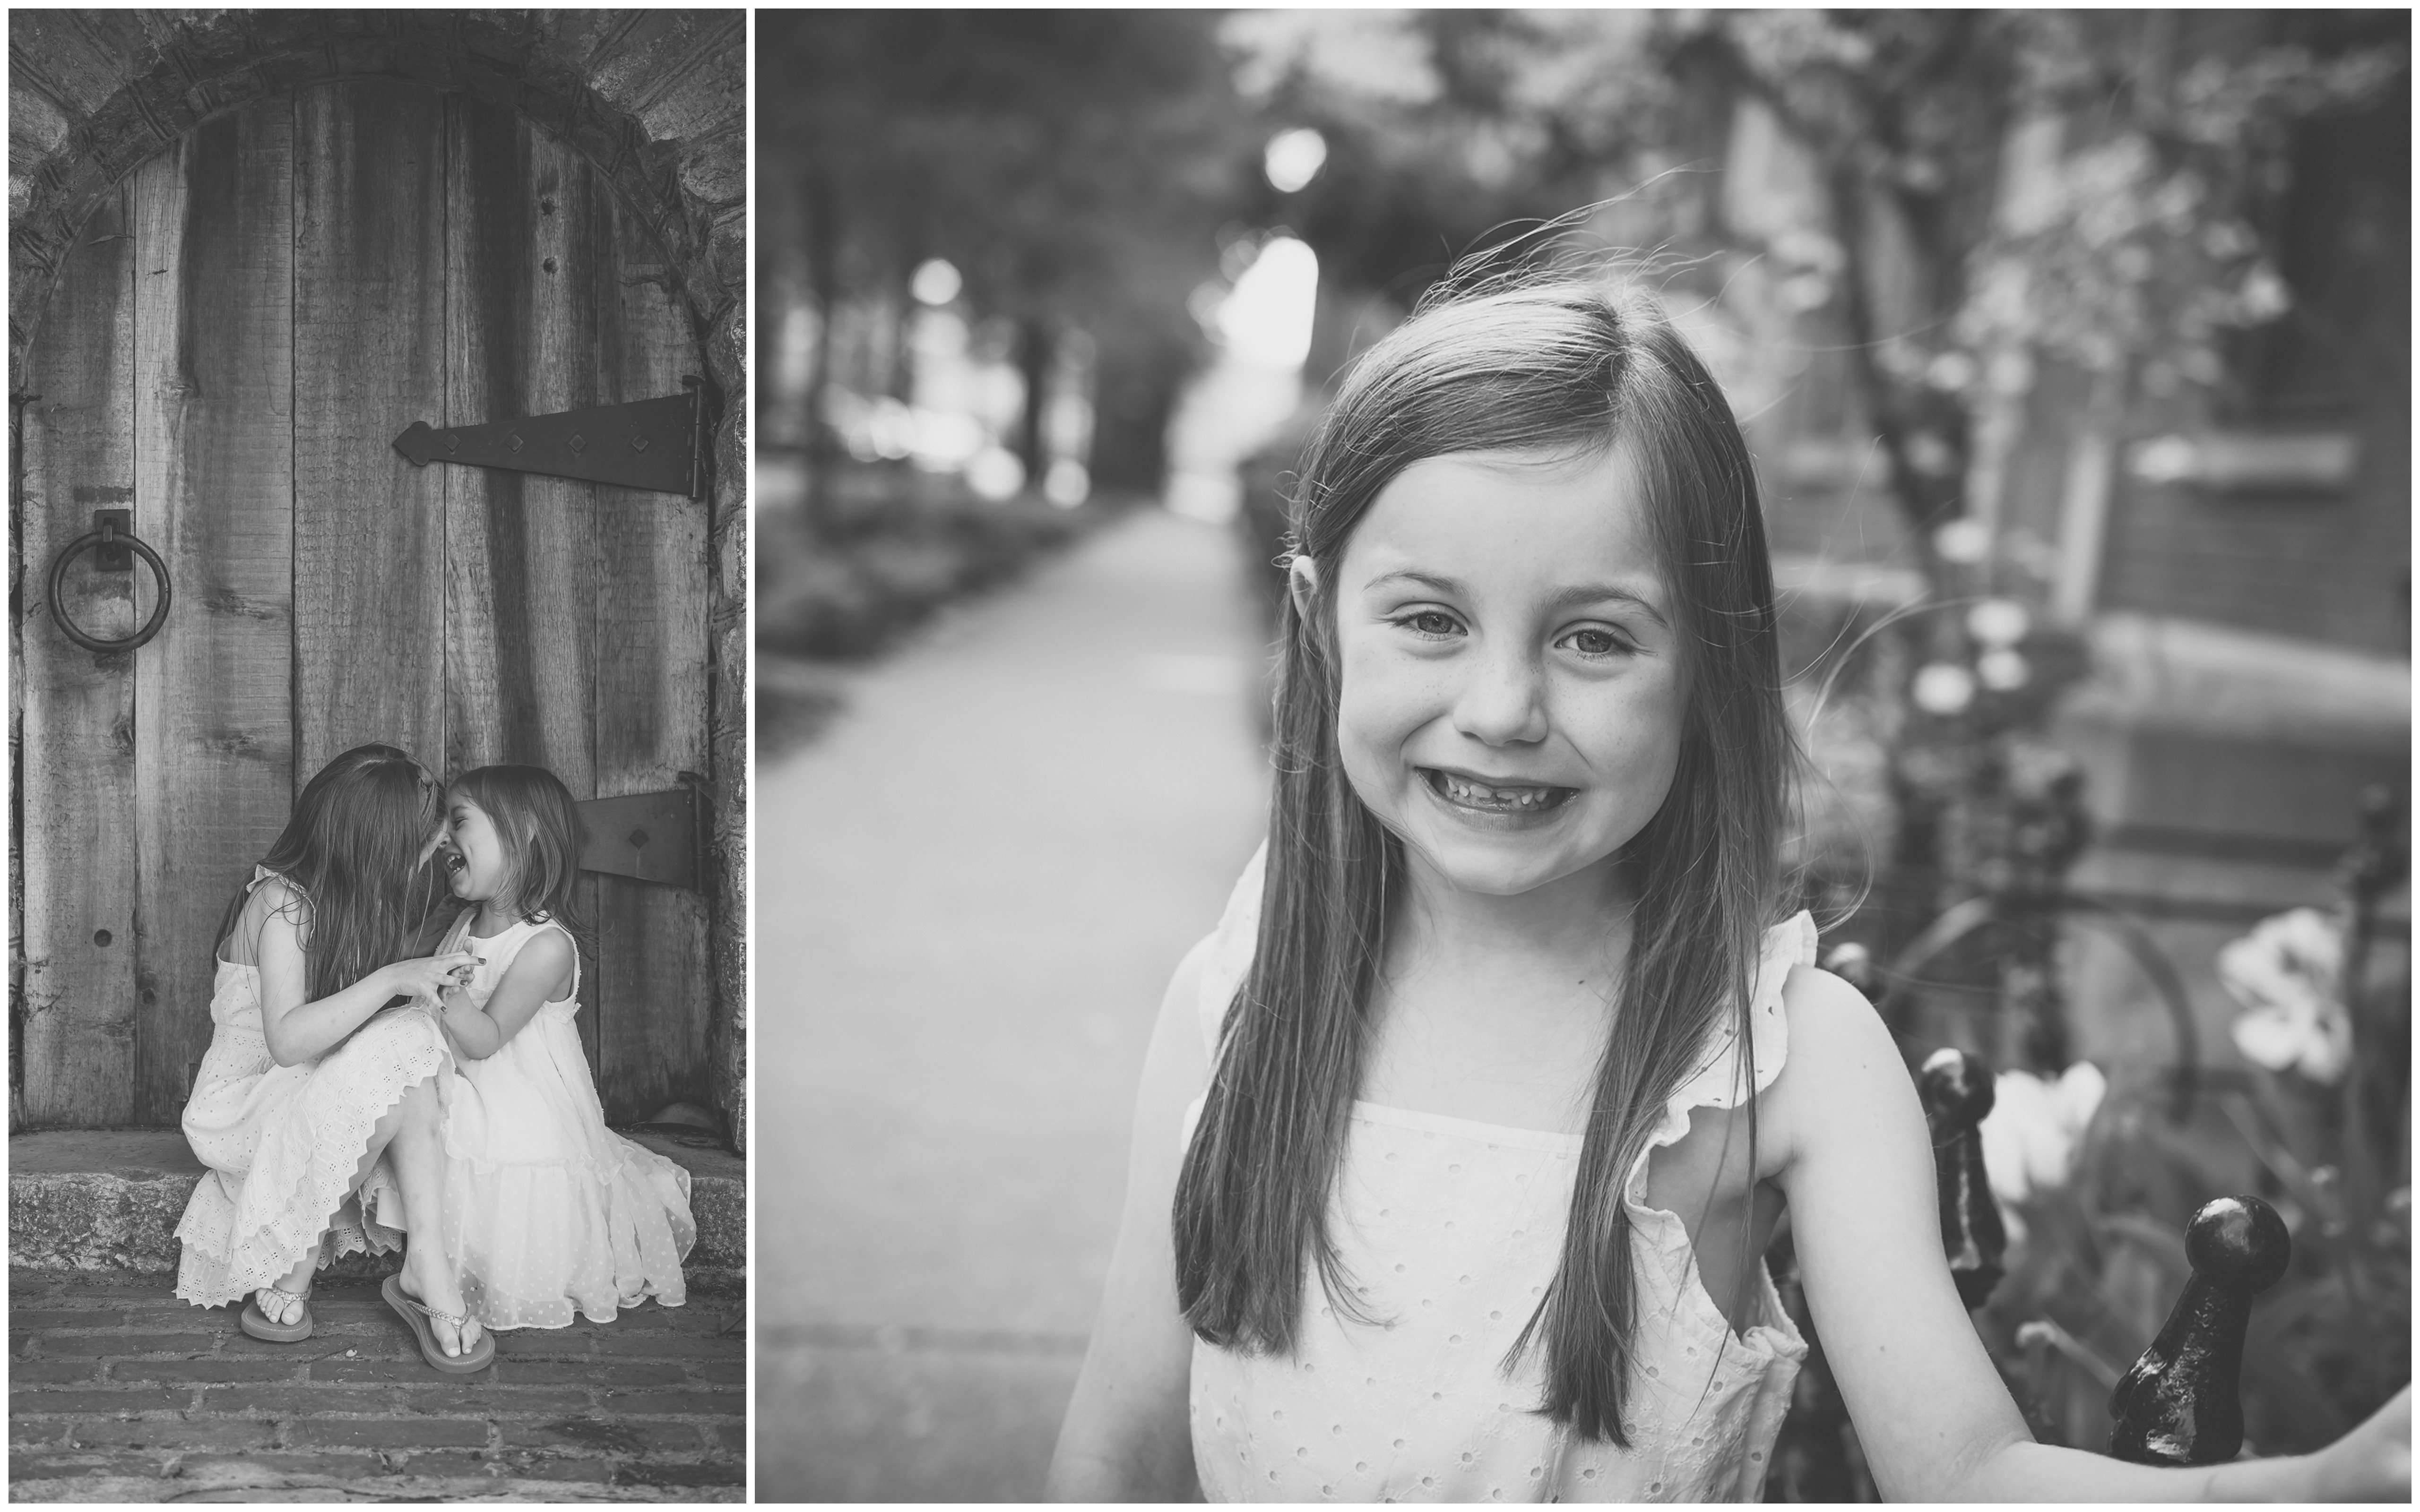 cincinnati childrens captures moments - HD 5120×3200